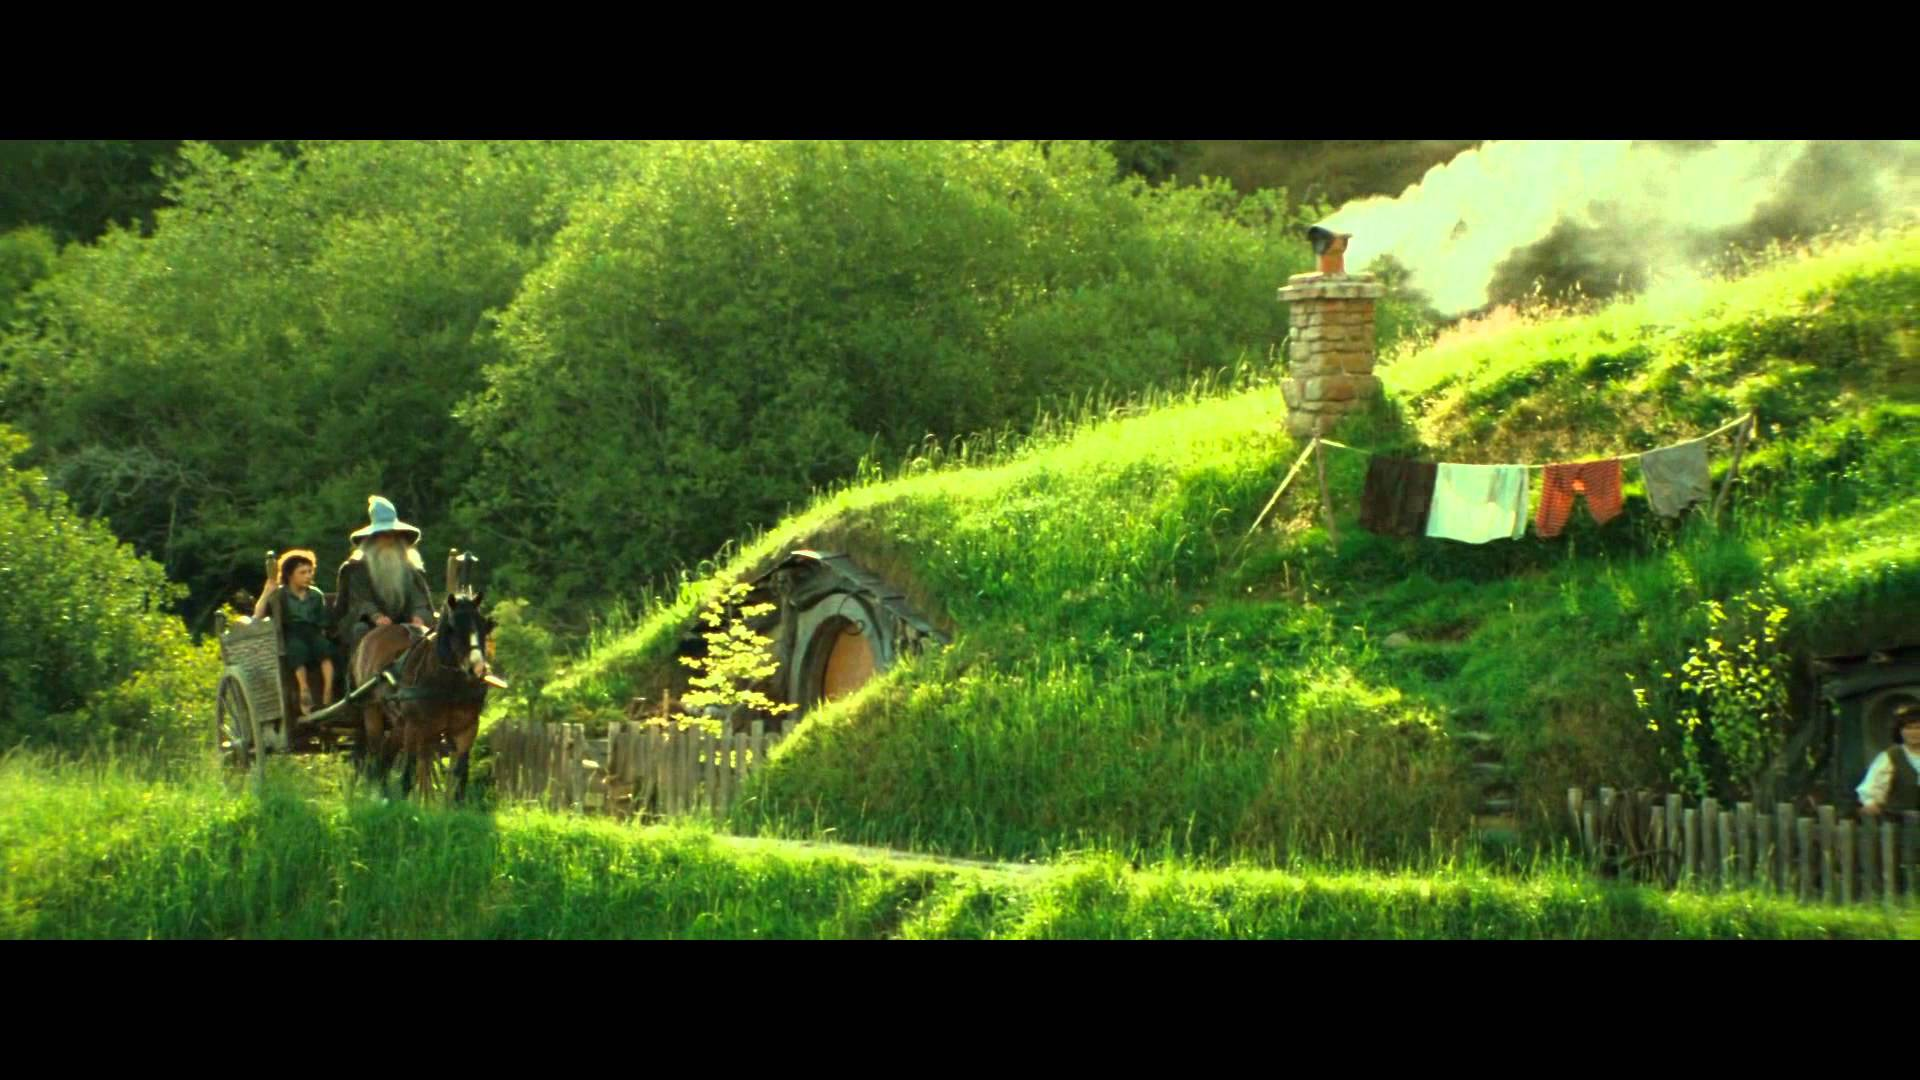 The Shire in Tolkien's literary classic The Lord of the Rings.